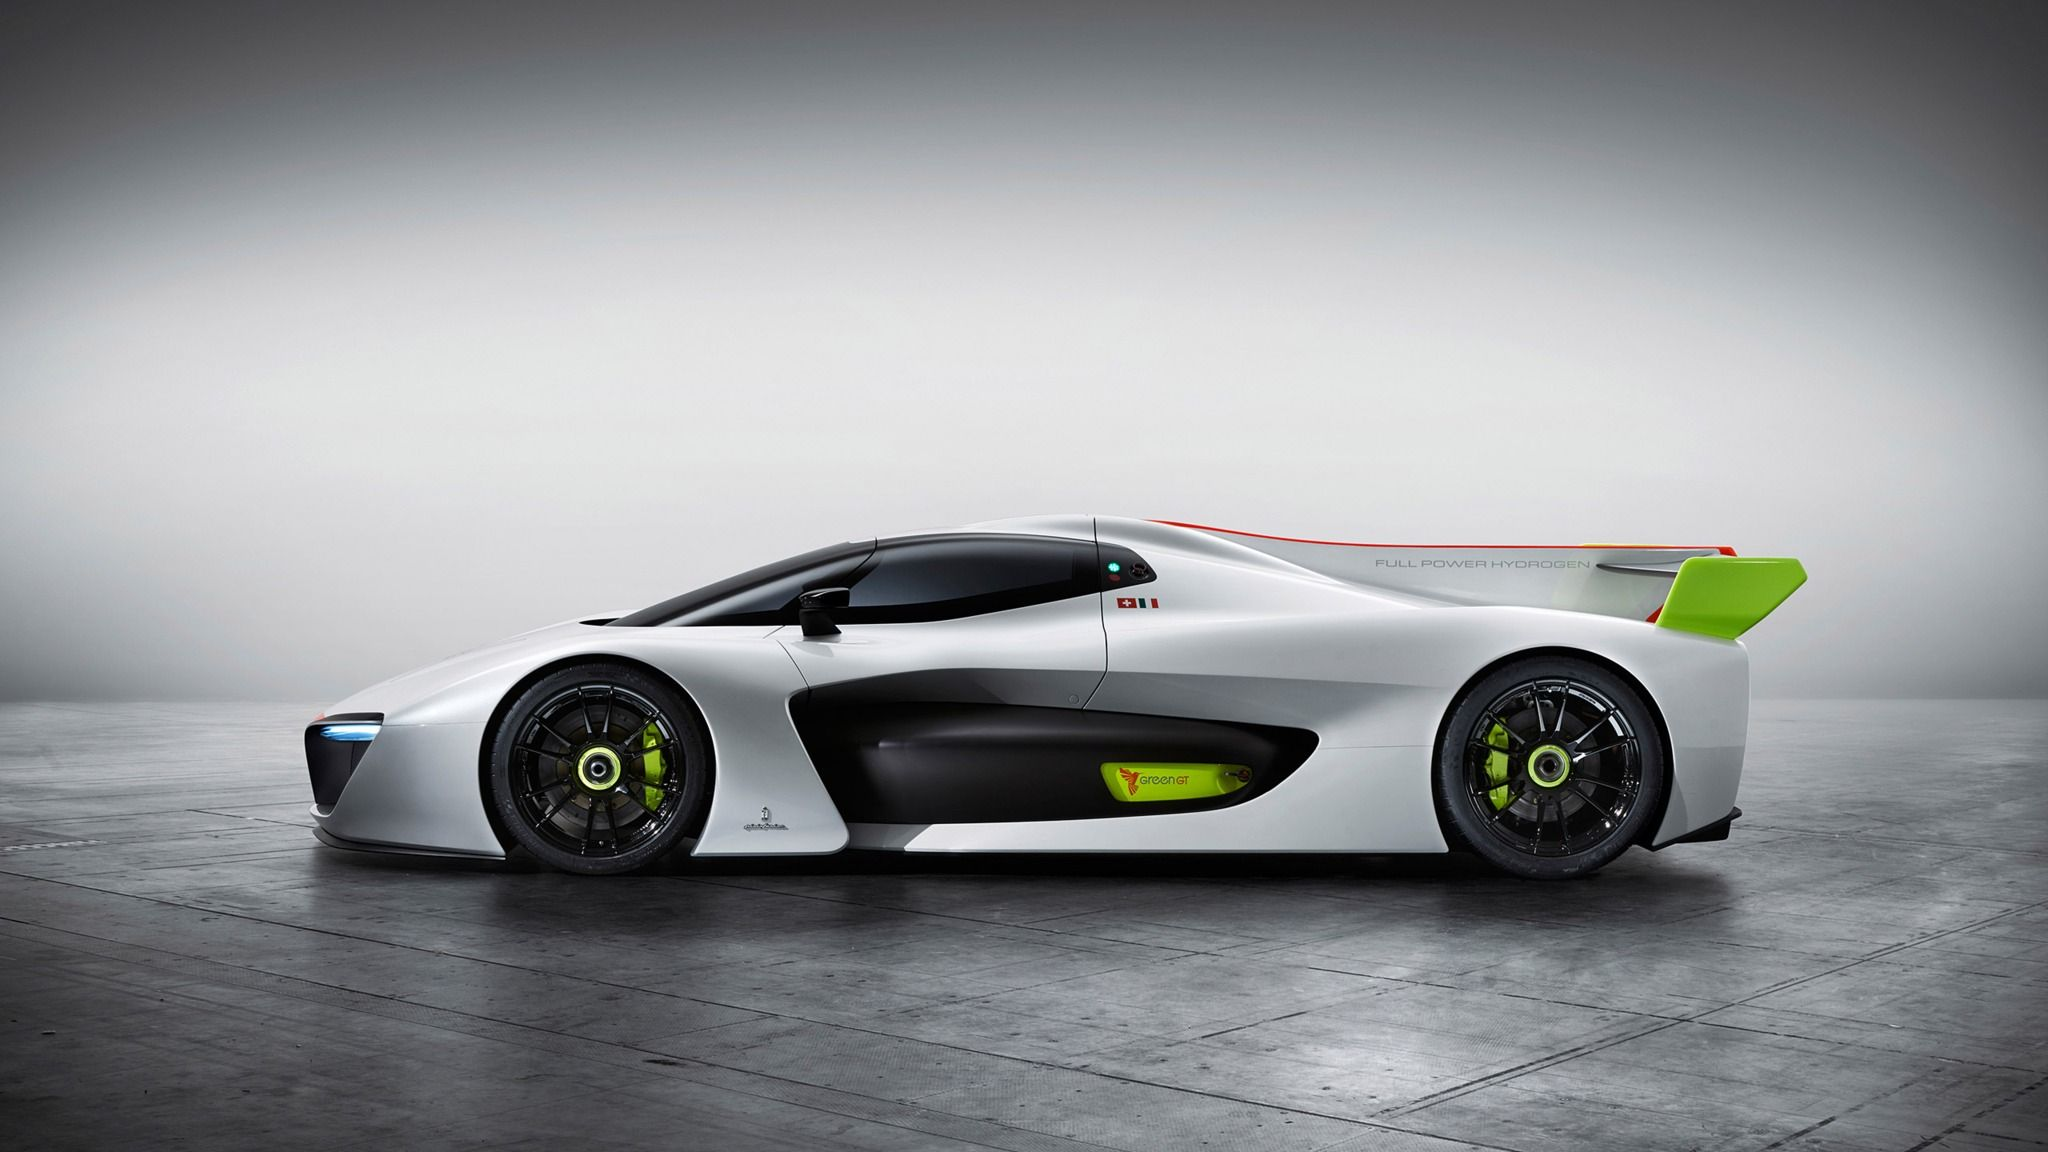 Download Pininfarina H2 Speed Concept Car Hd Wallpaper In